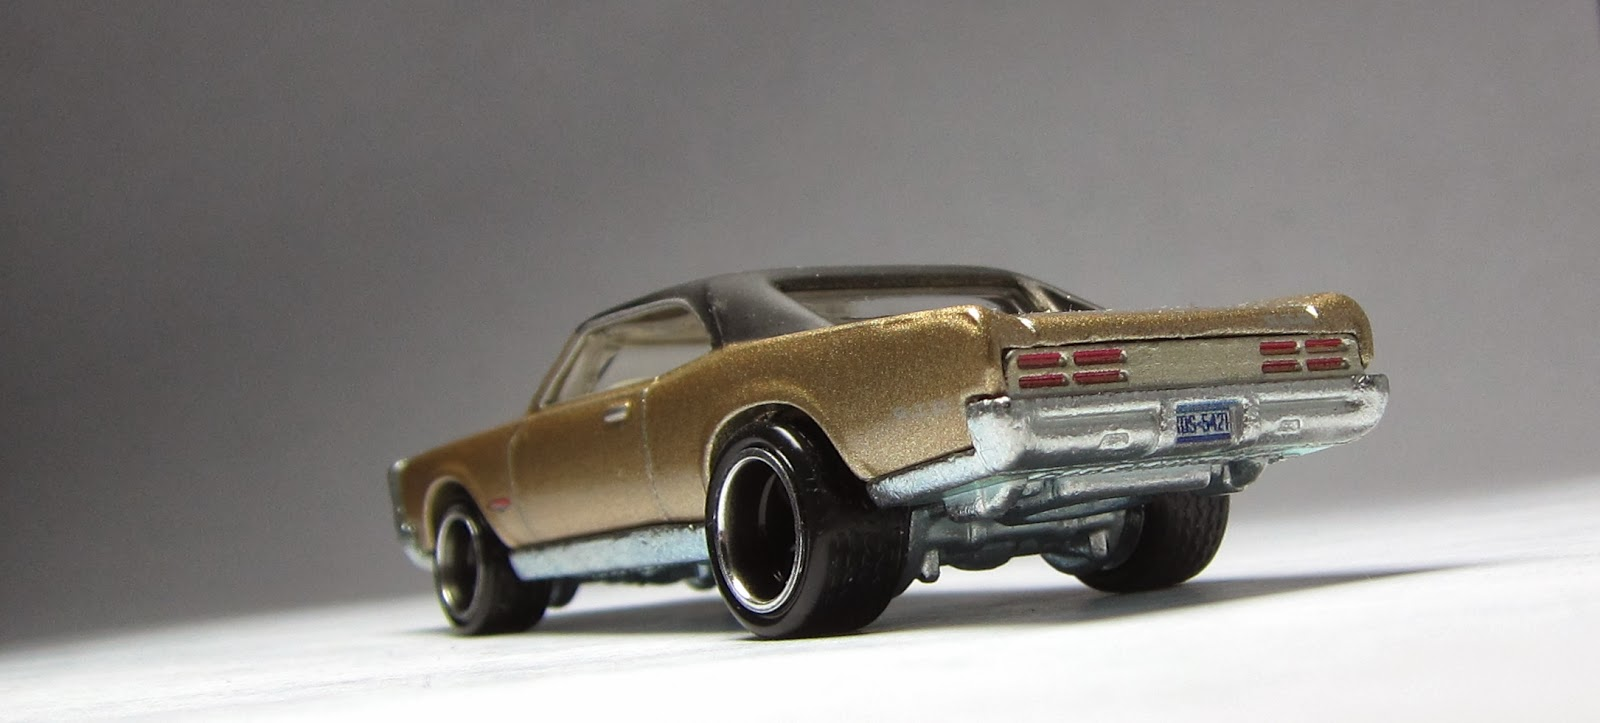 Five Things Didnt Know Vegas Rat Rods moreover Hot Wheels Need For Speed Mustang further File wolseley 4 50 front also Classic American Car Emblems besides Stock Vector Vintage Garage Retro Poster. on old 50s cars